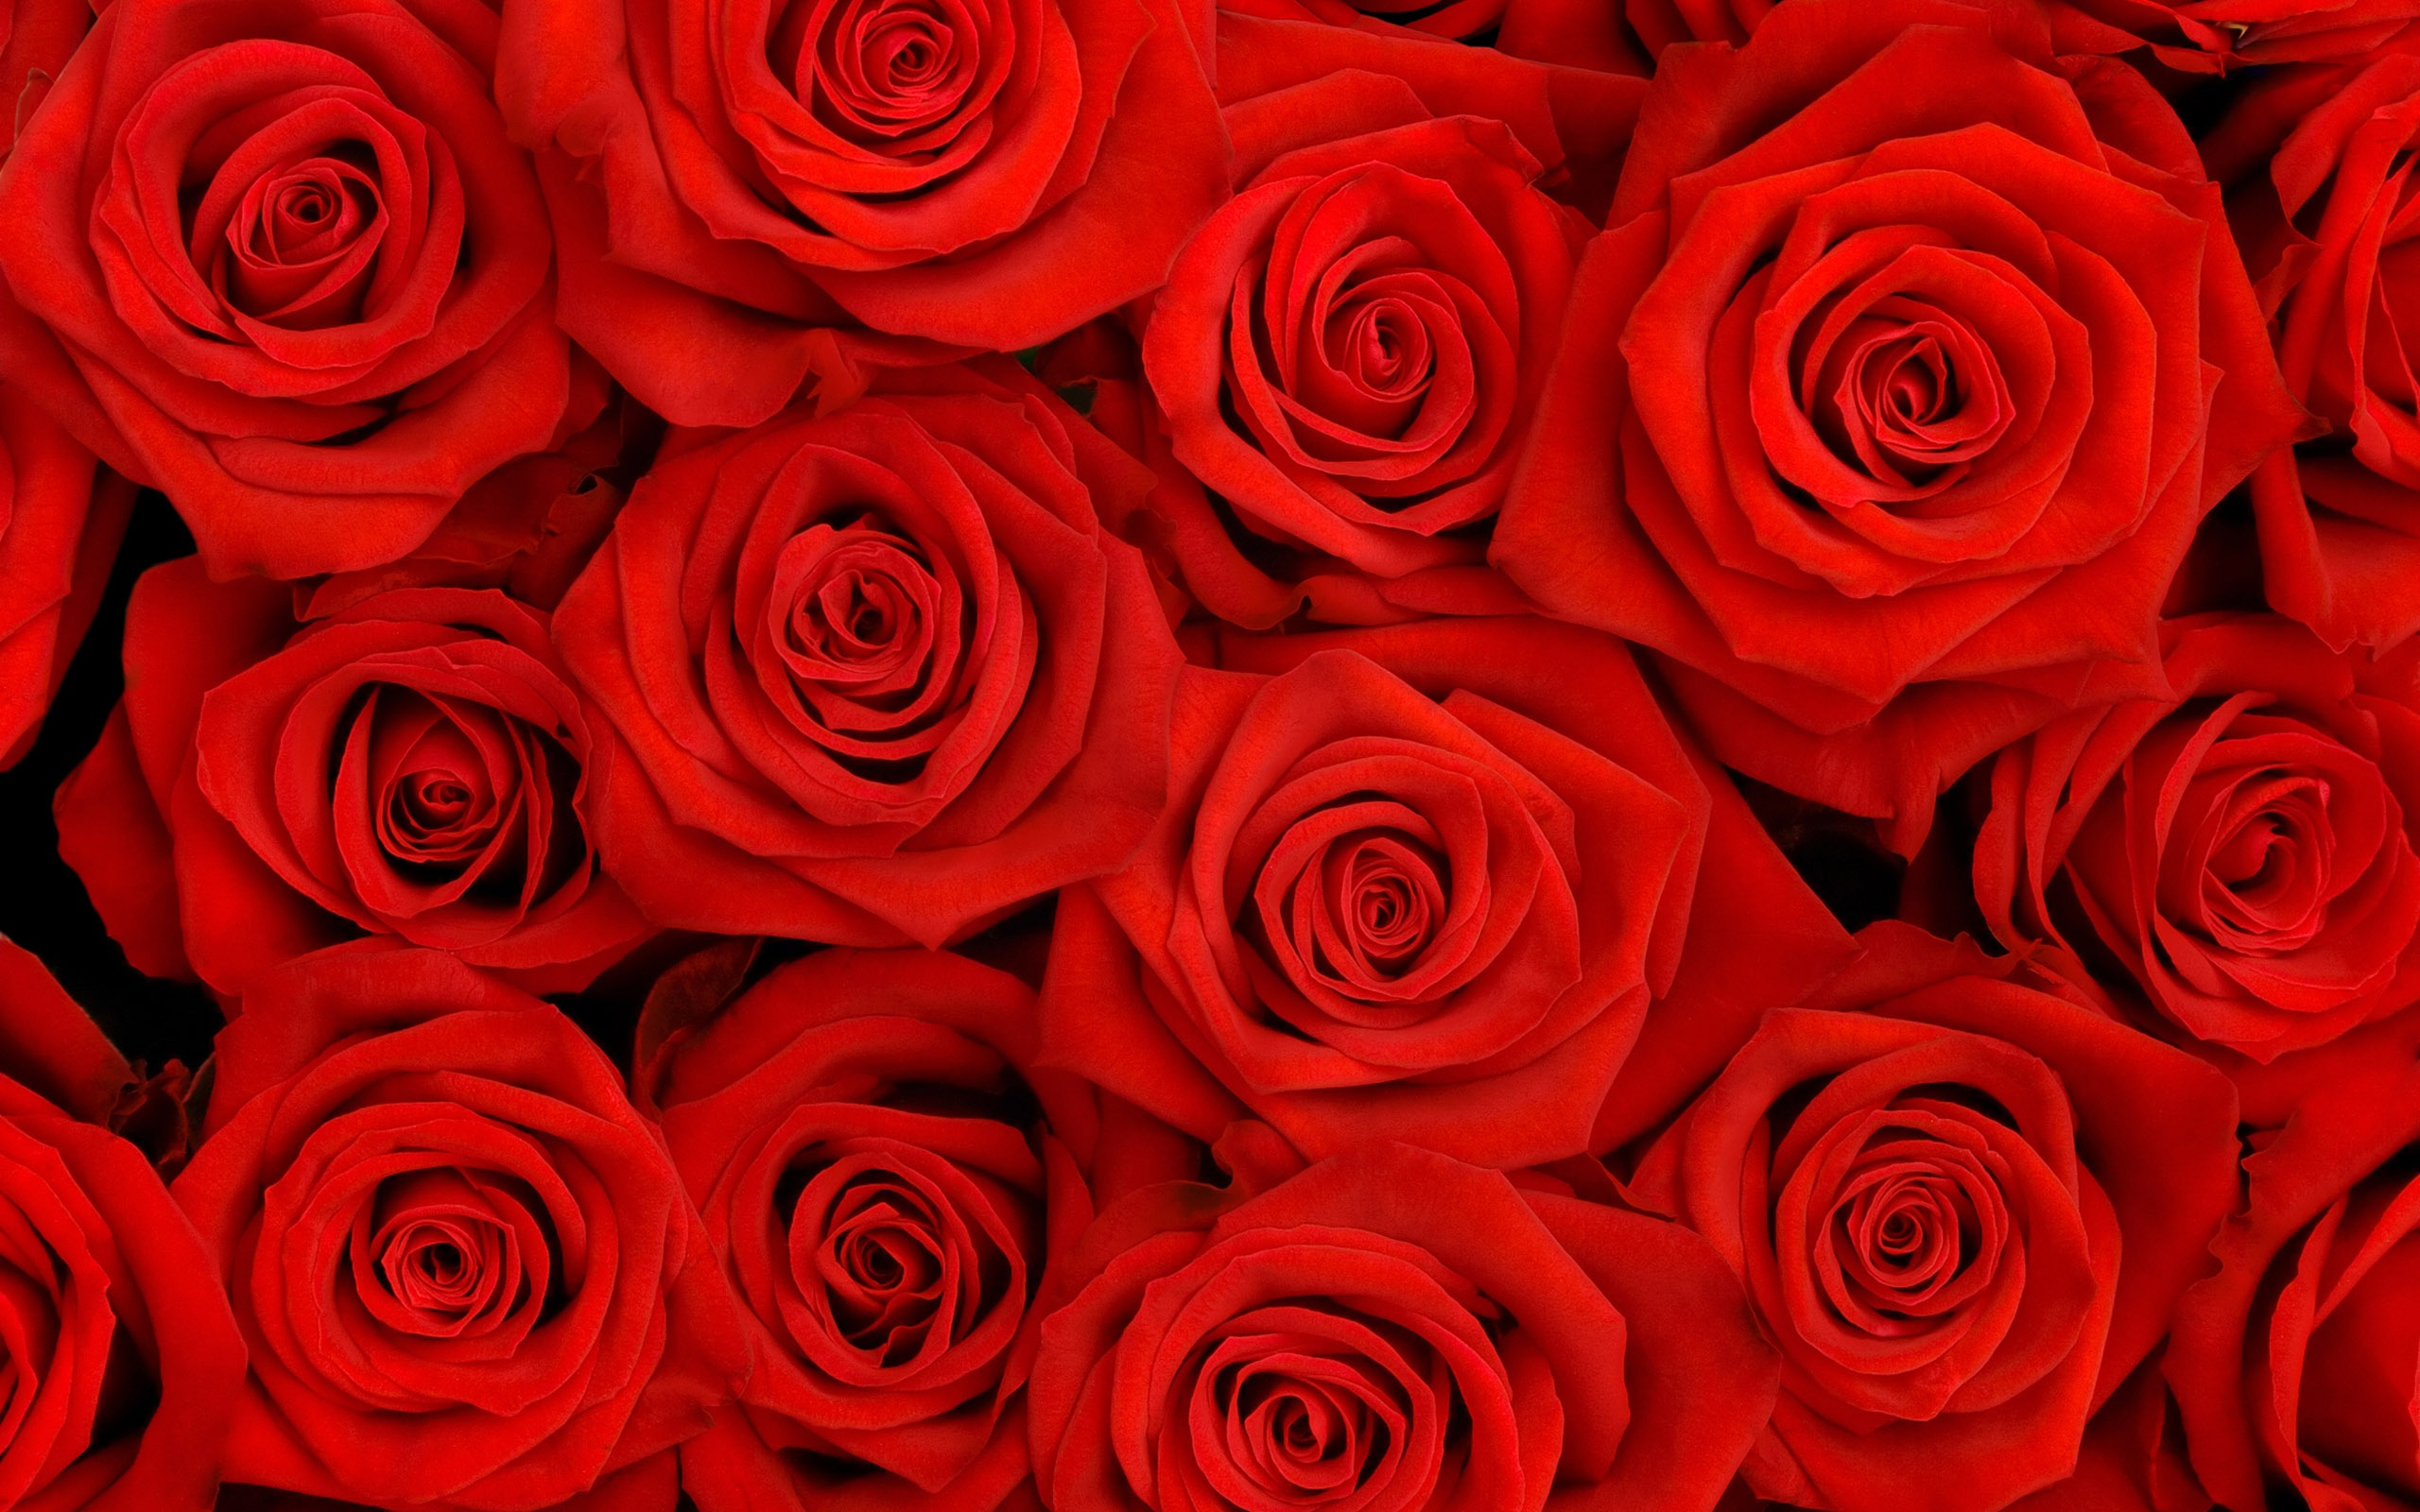 red roses full hd wallpaper and background image | 2560x1600 | id:443046